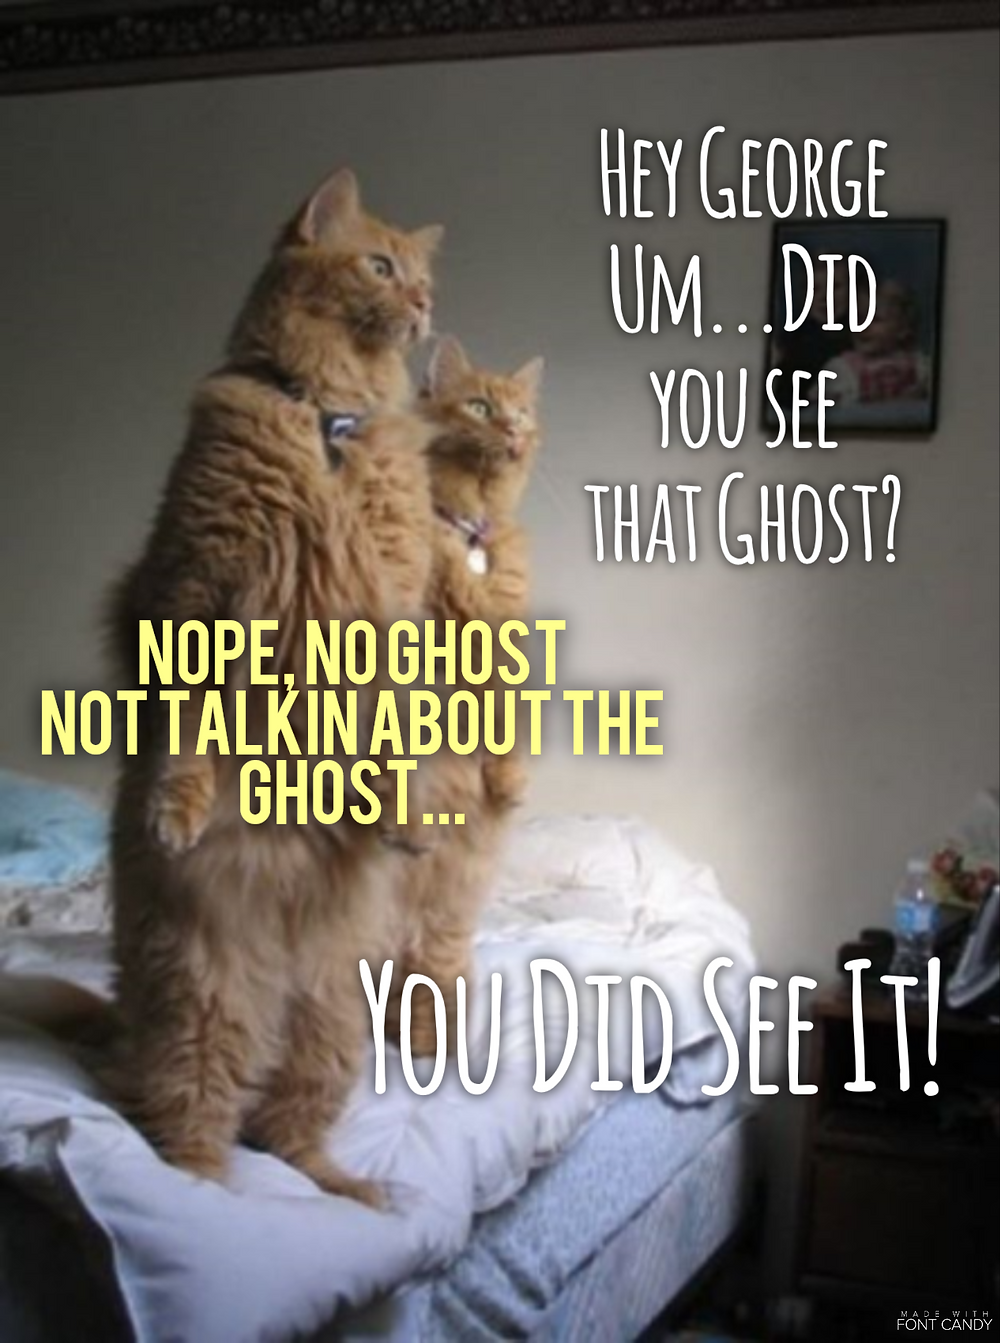 I didn't see no ghost!